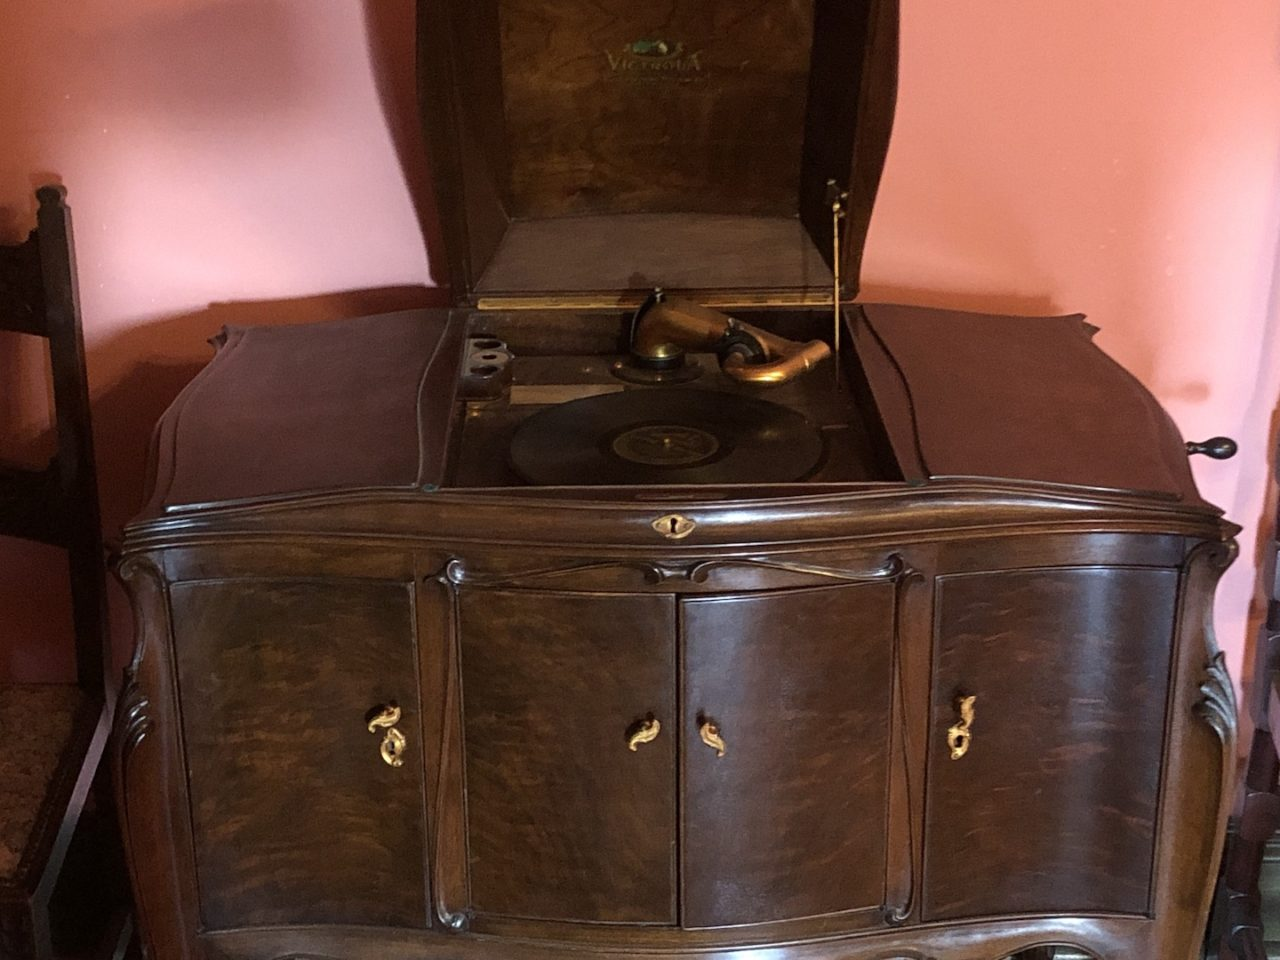 Victrola at the Overholser Mansion - photo by Dennis Spielman